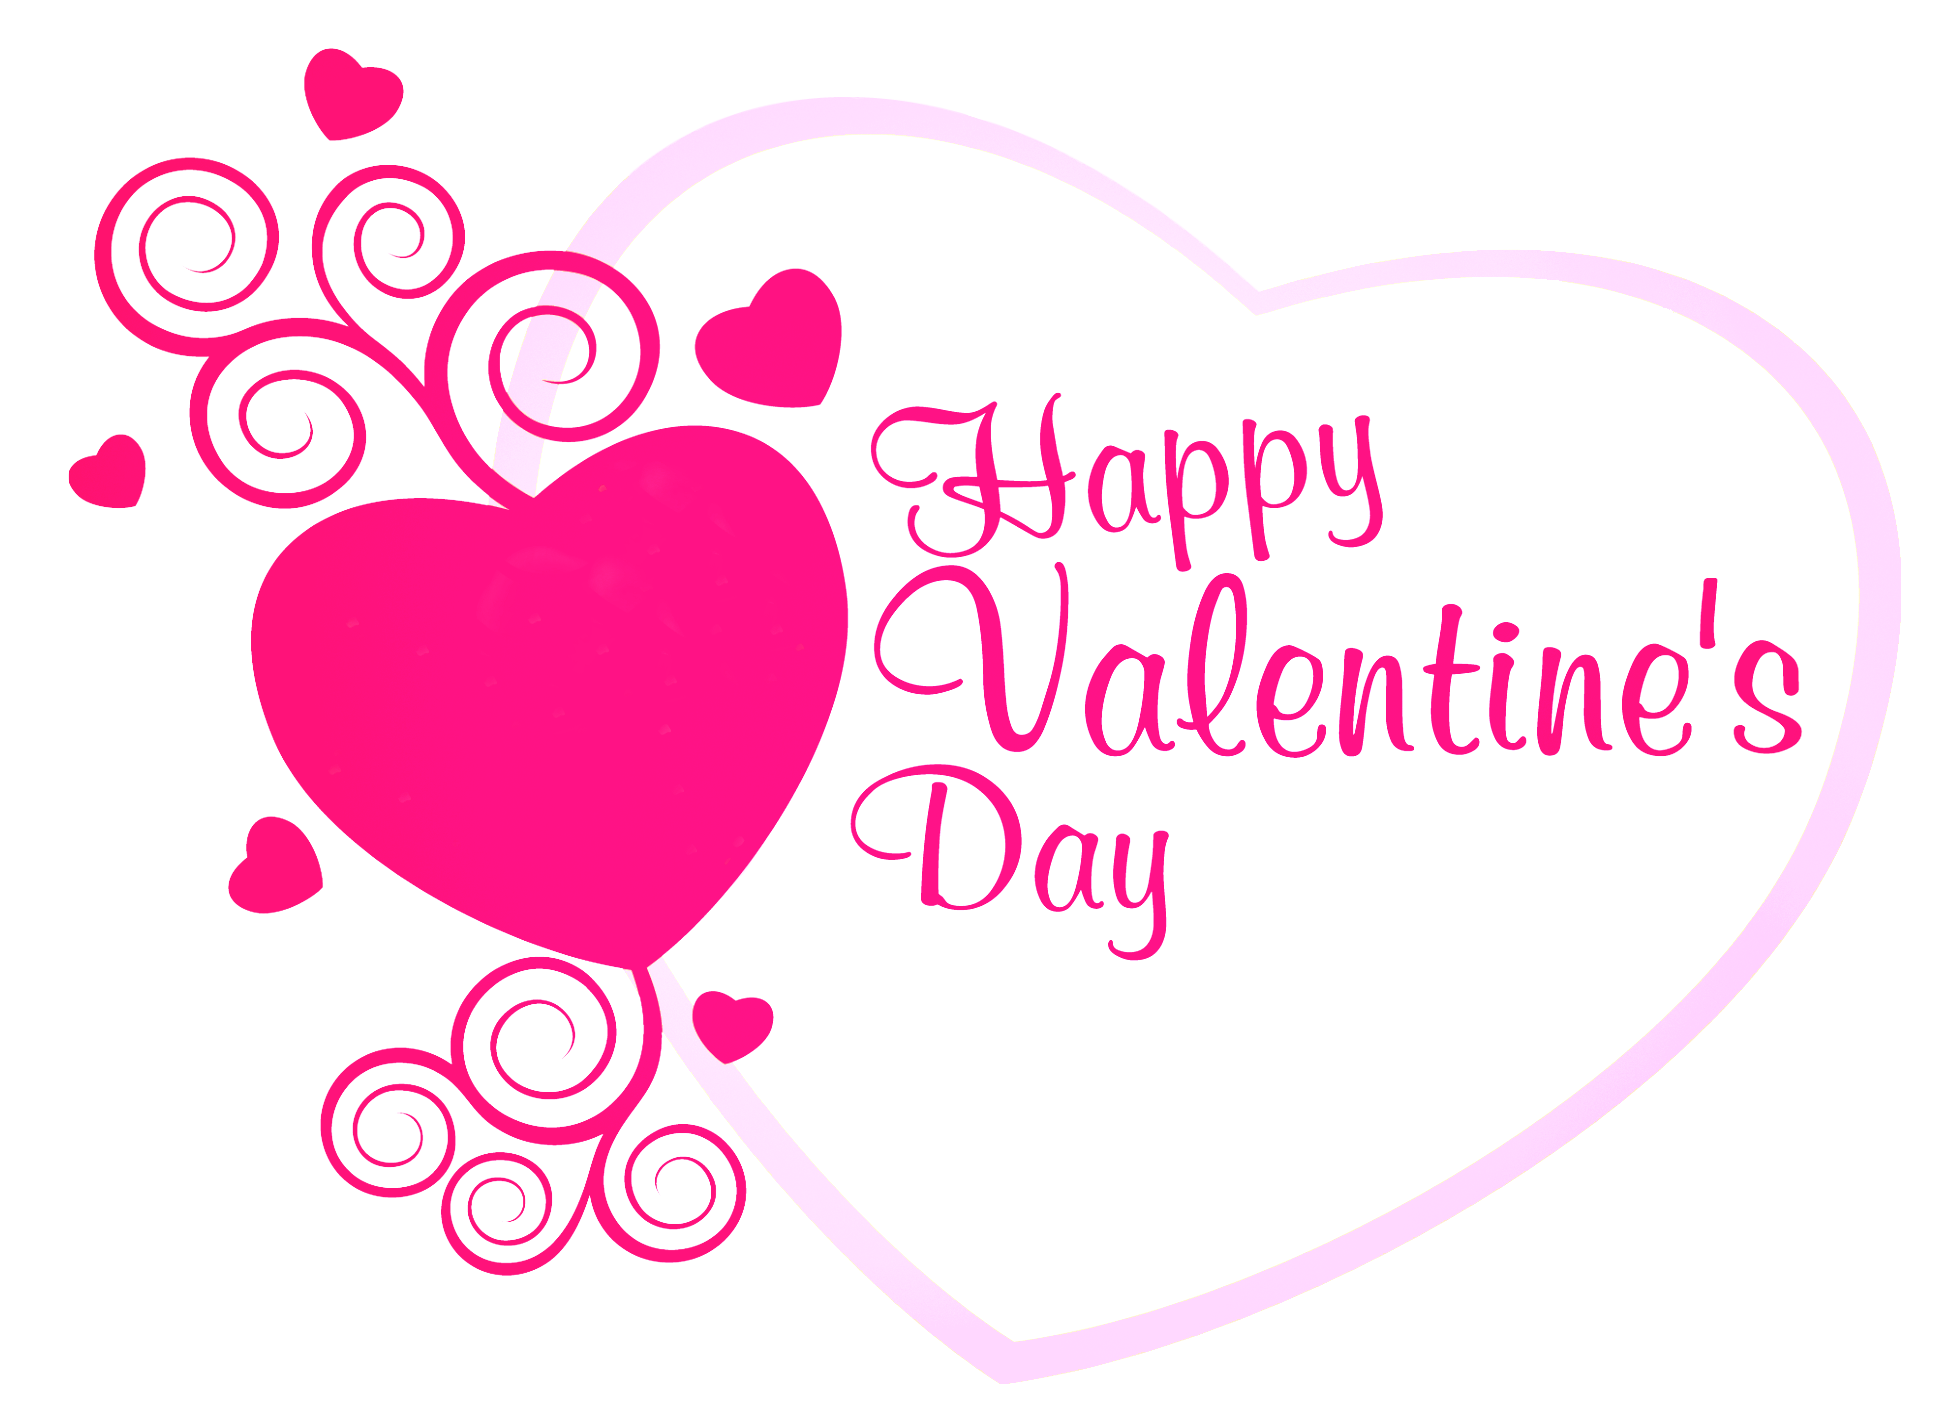 Valentines Day Hearts Happy Valentines Day Pictures Clipart.